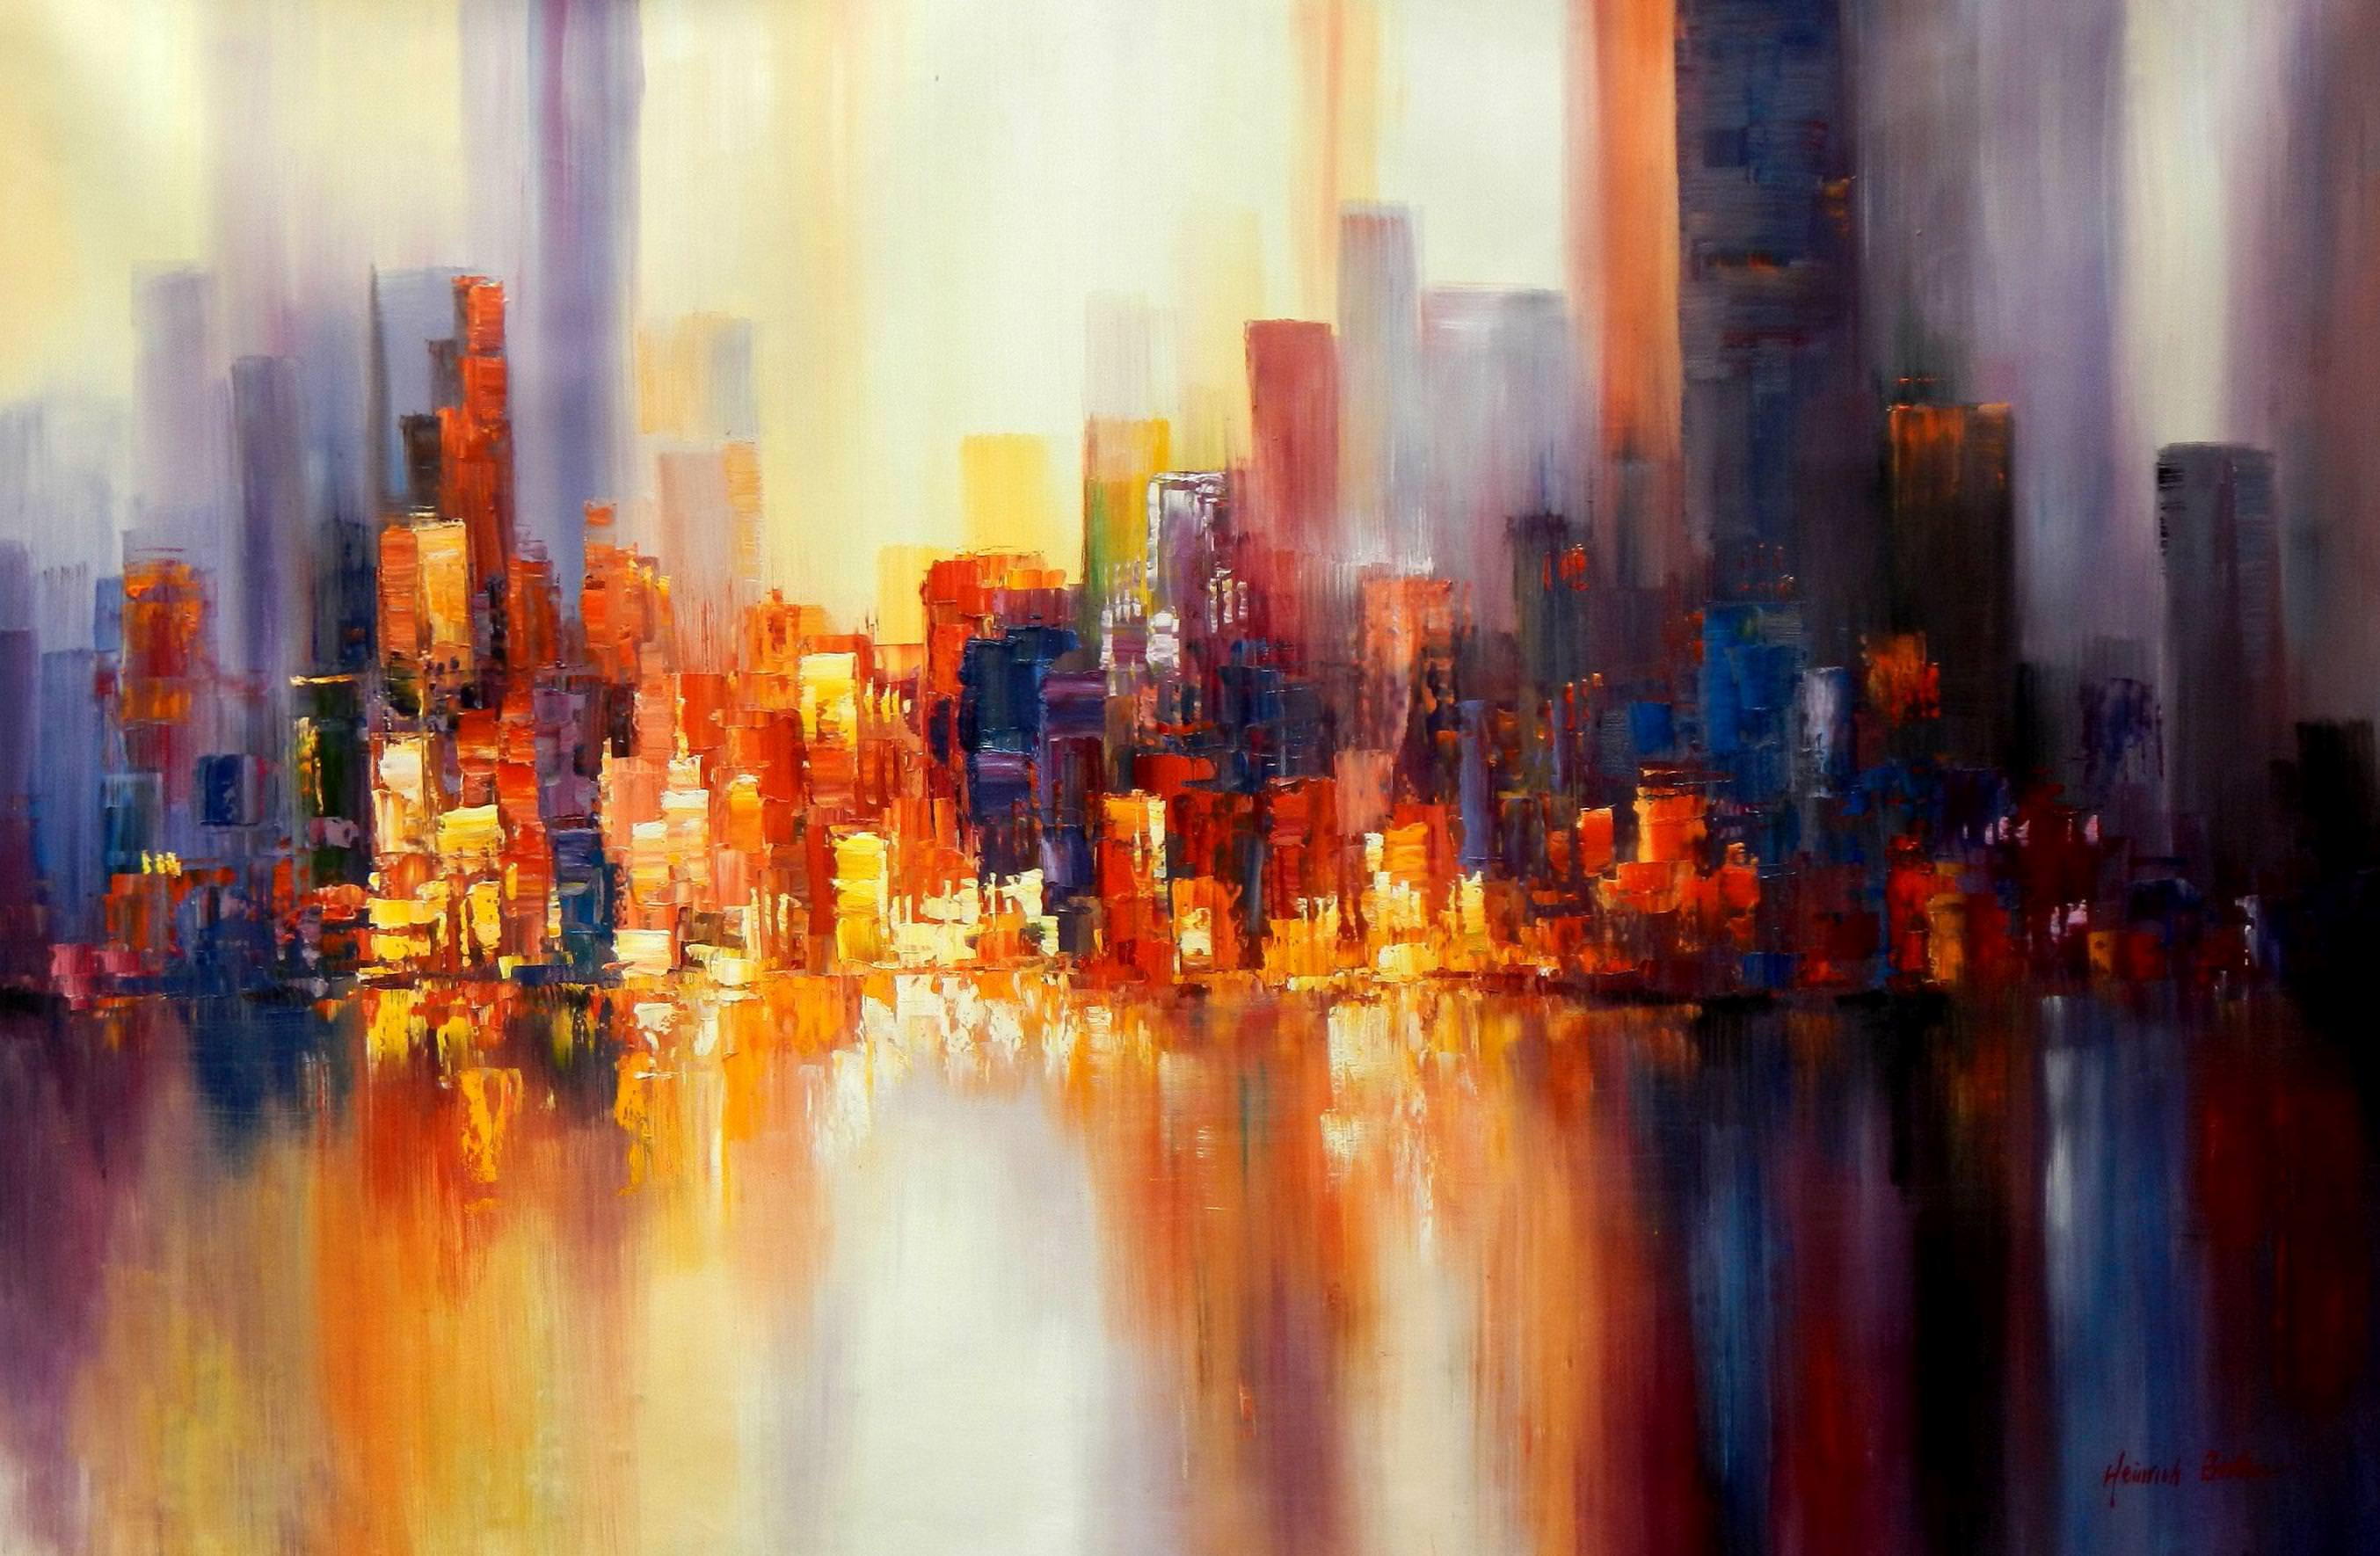 Abstrakt New York Skyline am Abend p93583 120x180cm imposantes Ölgemälde